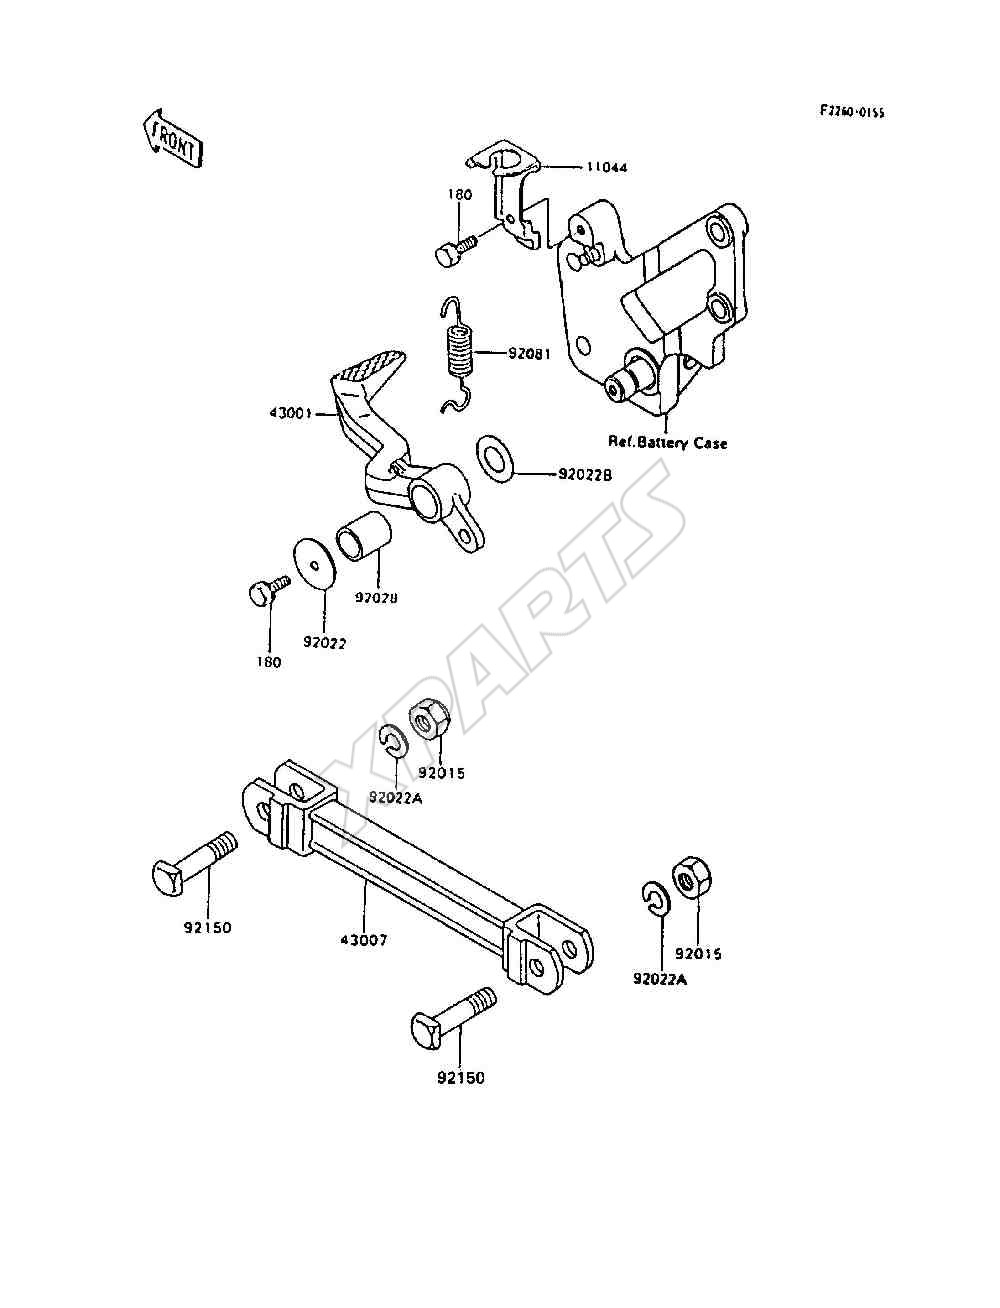 1995 Ninja 600r Zx600 C8 Engine Diagram 1985 900 Picture For Category Brake Pedal Torque Link